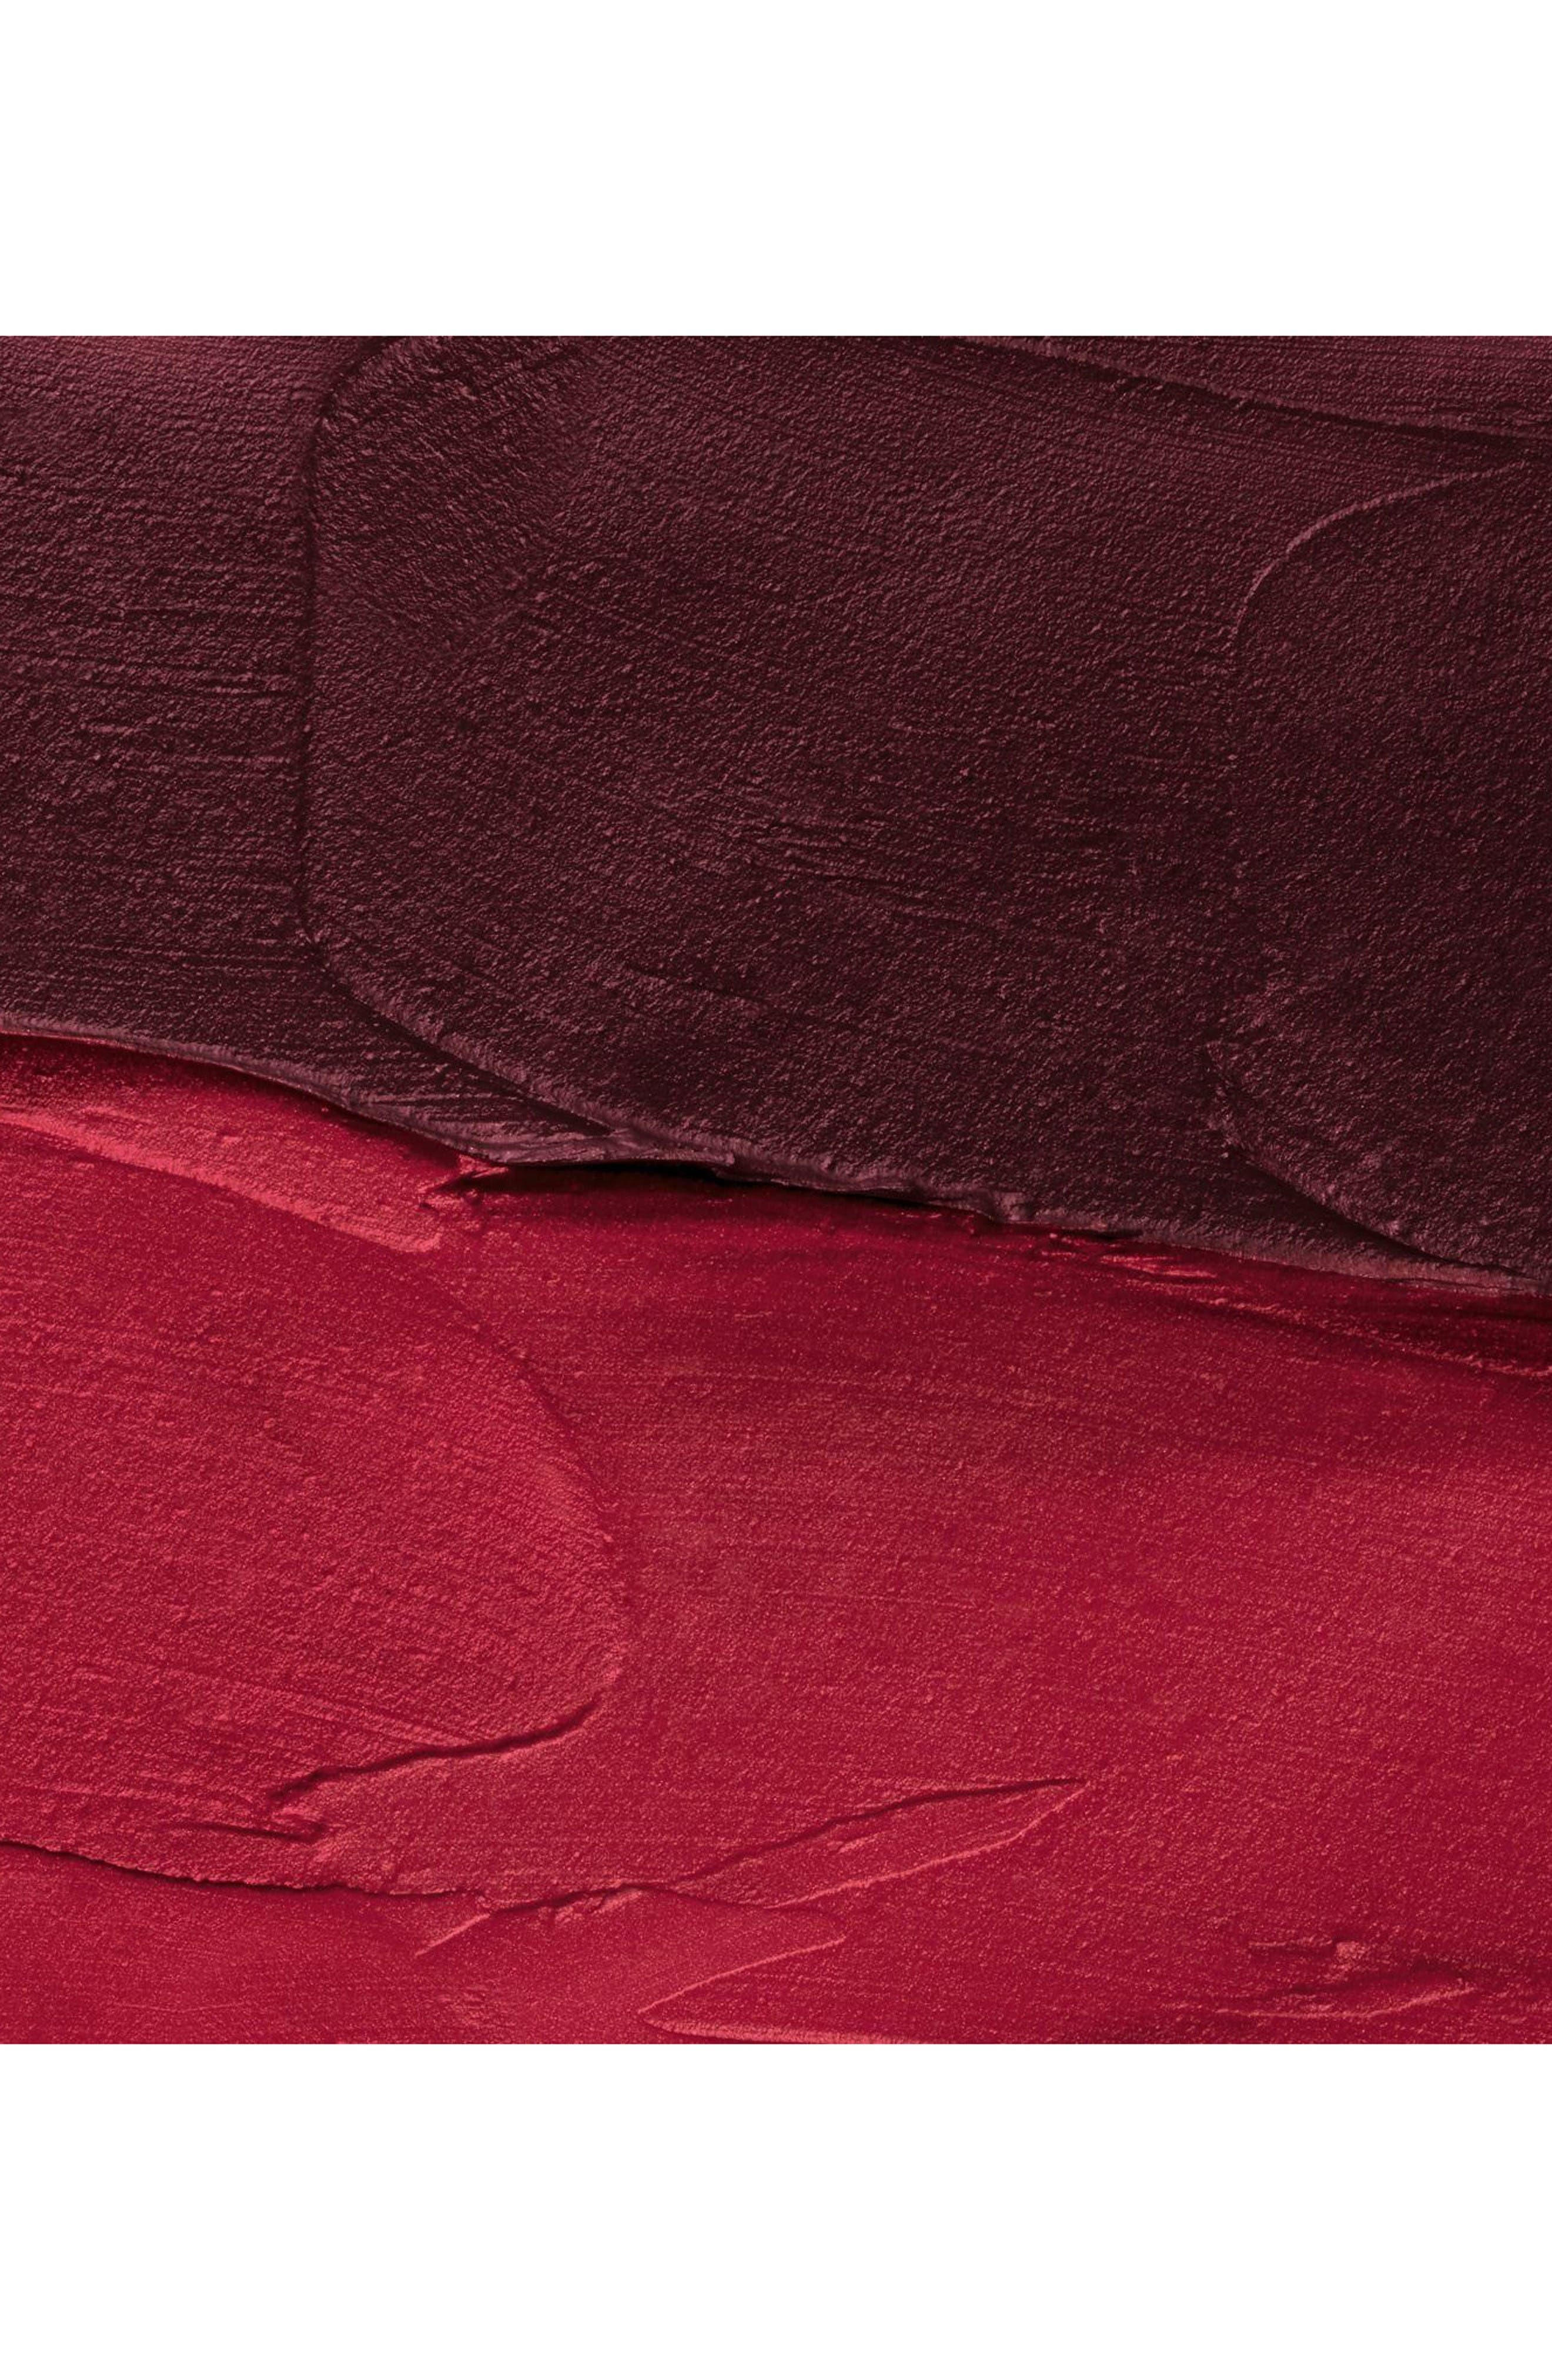 Baby Doll Kiss & Blush Duo Stick,                             Alternate thumbnail 5, color,                             01 From Marrakesh To Paris